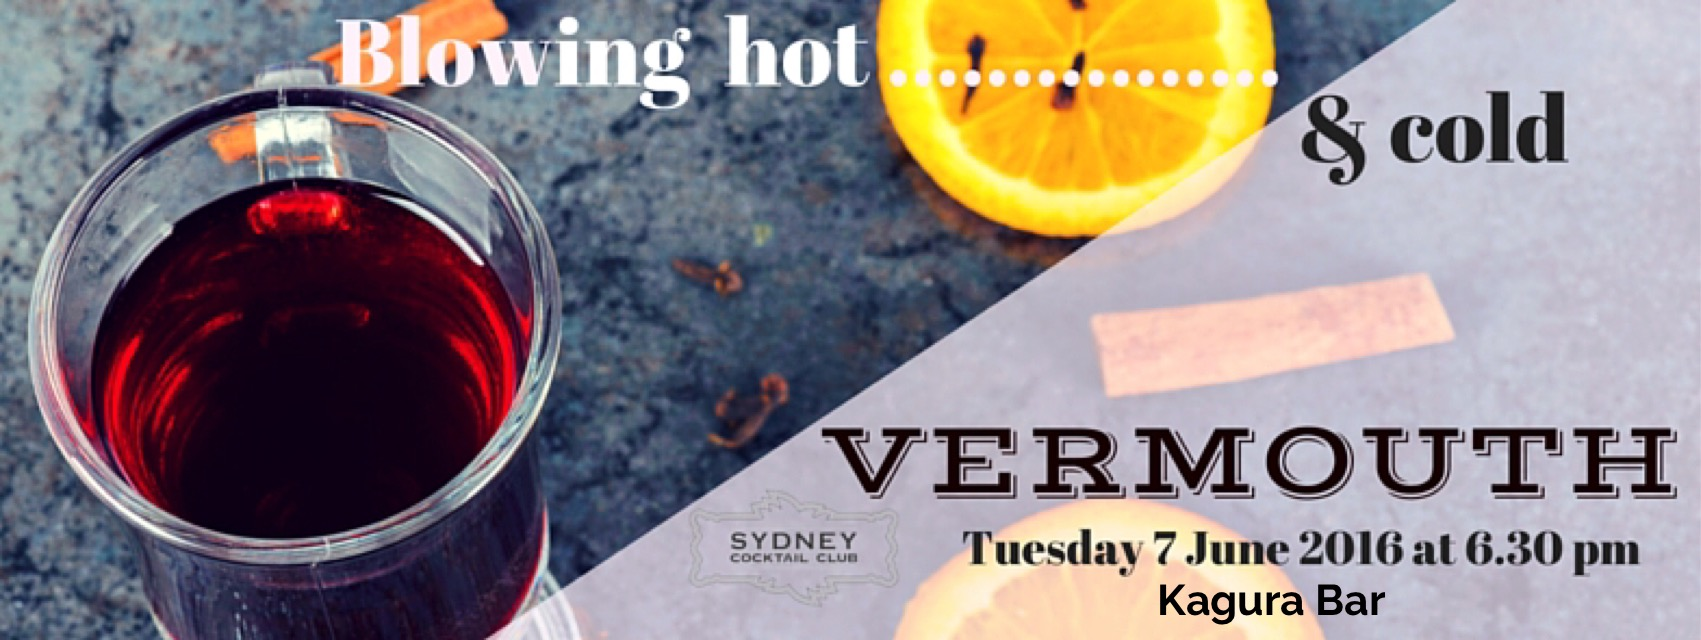 Blowing Hot & Cold with Vermouth